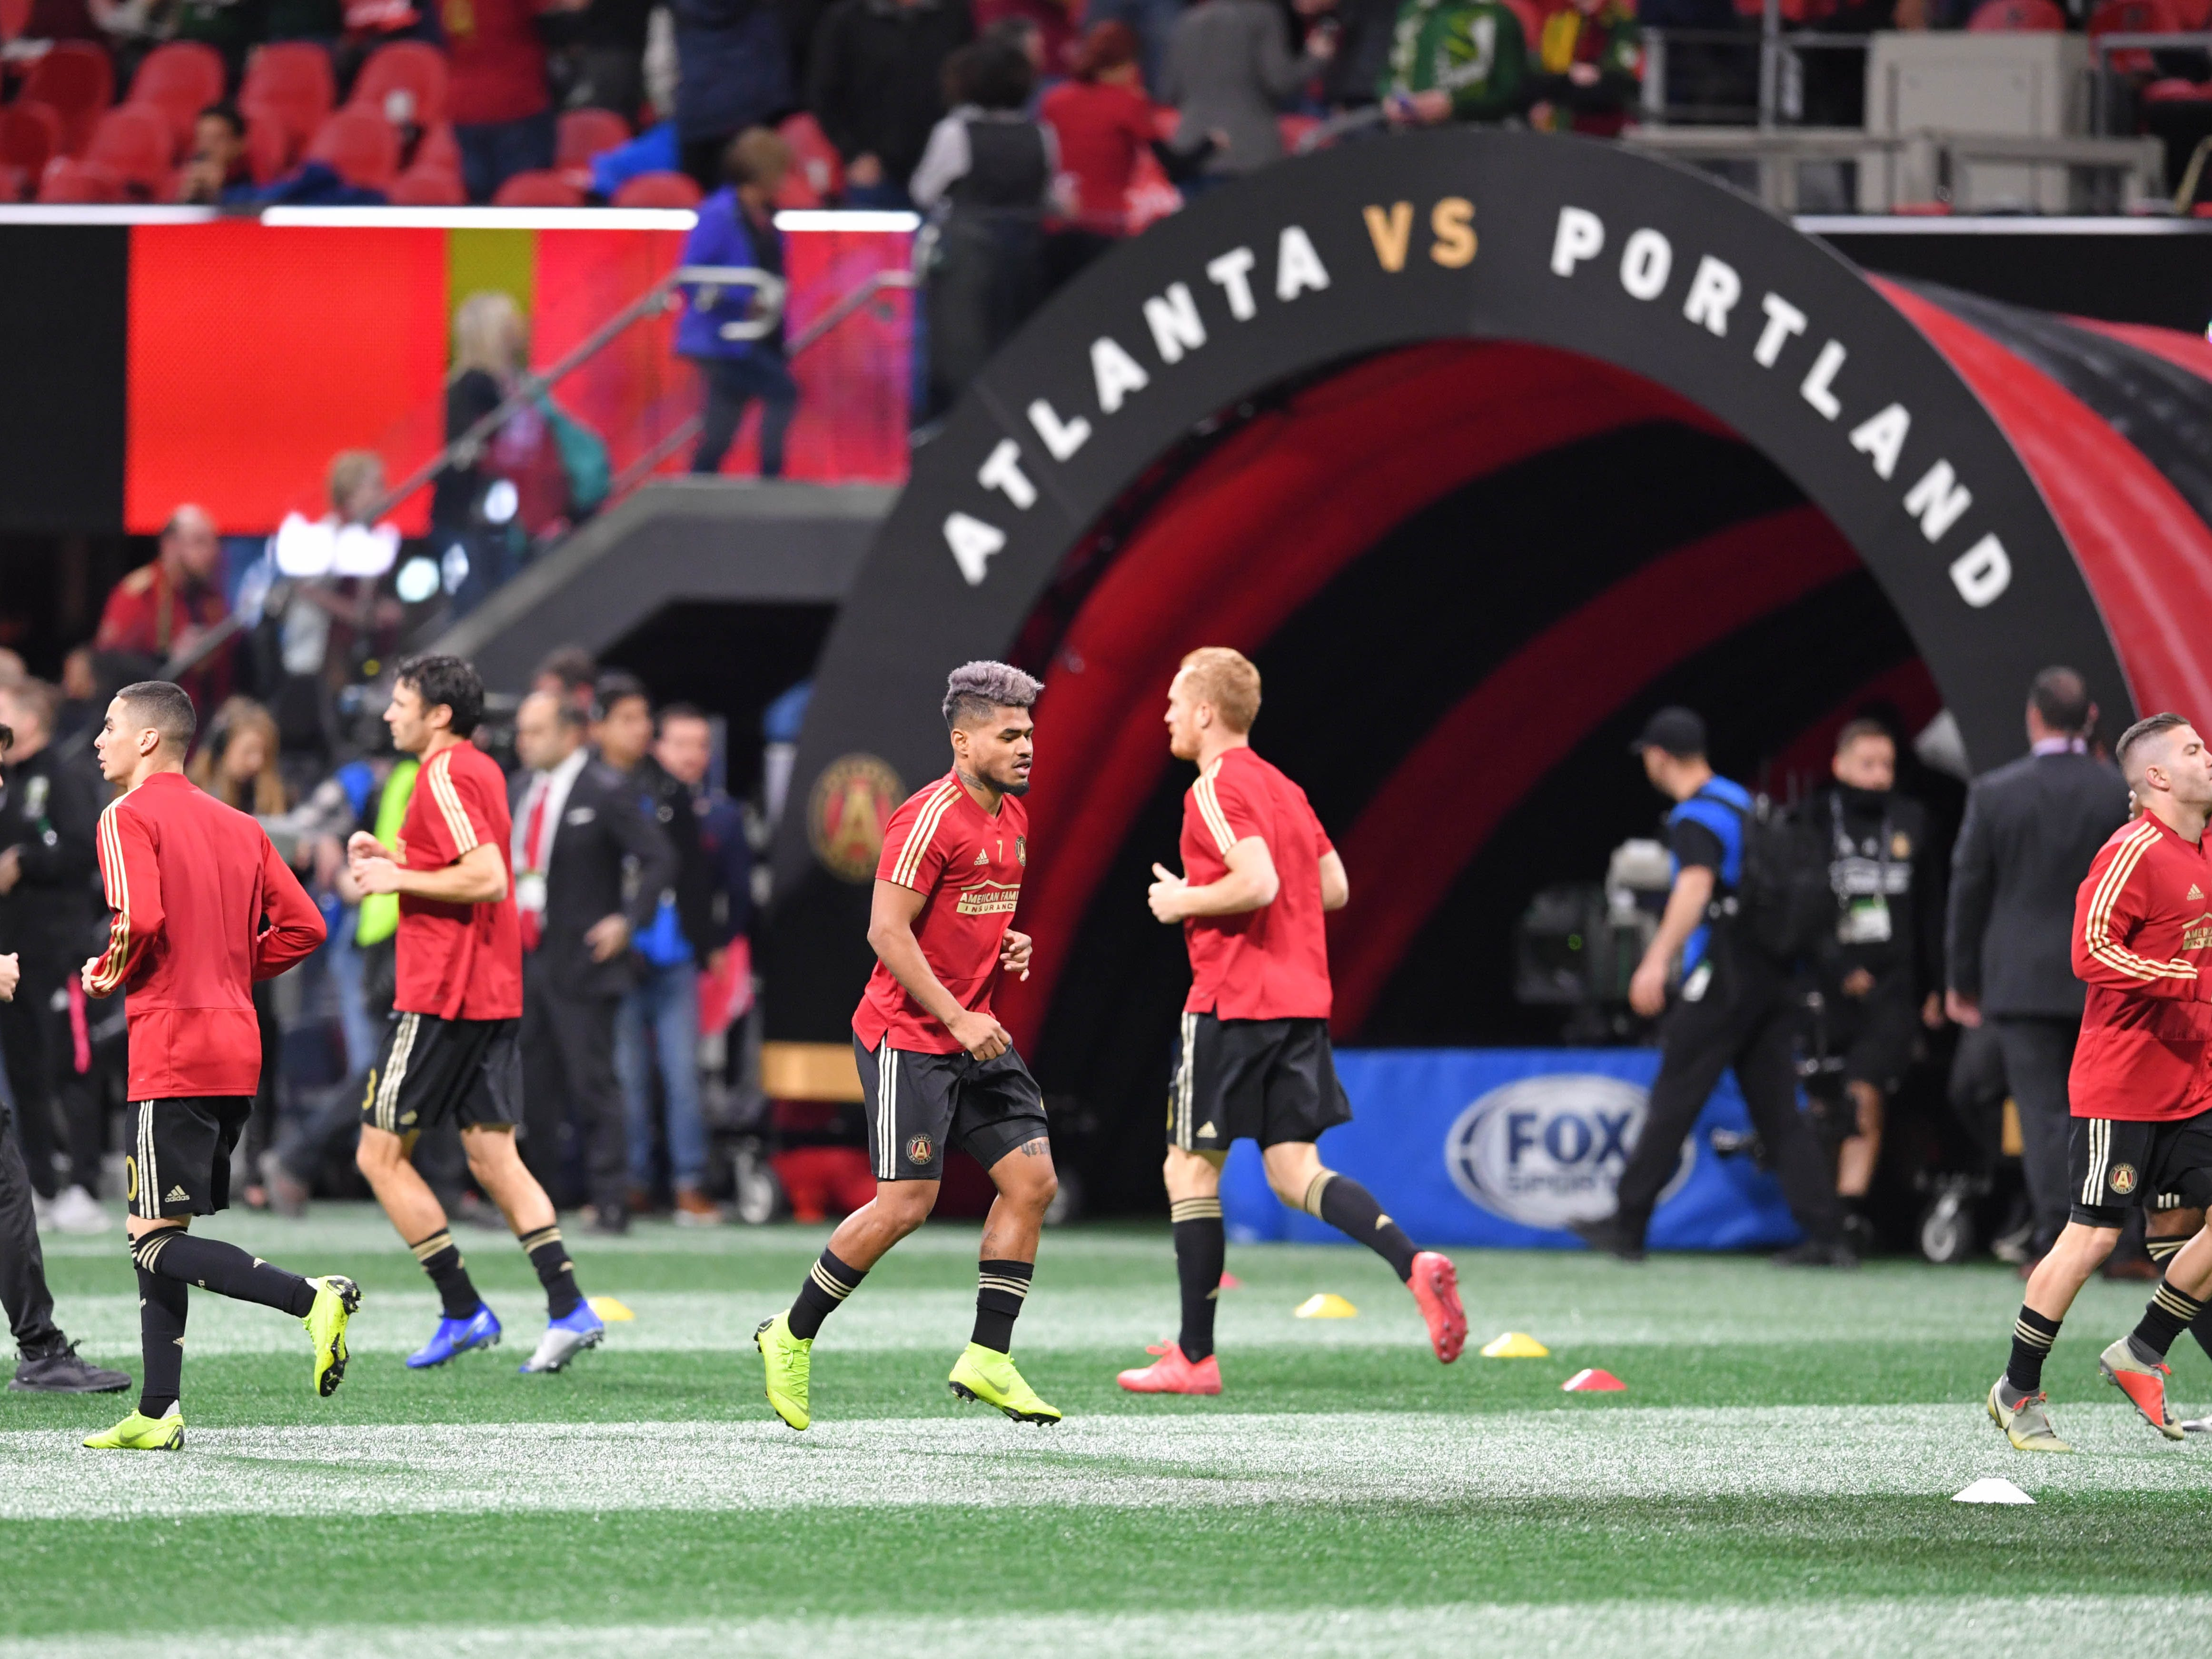 Atlanta United players warm up before the 2018 MLS Cup championship game against the Portland Timbers at Mercedes-Benz Stadium.